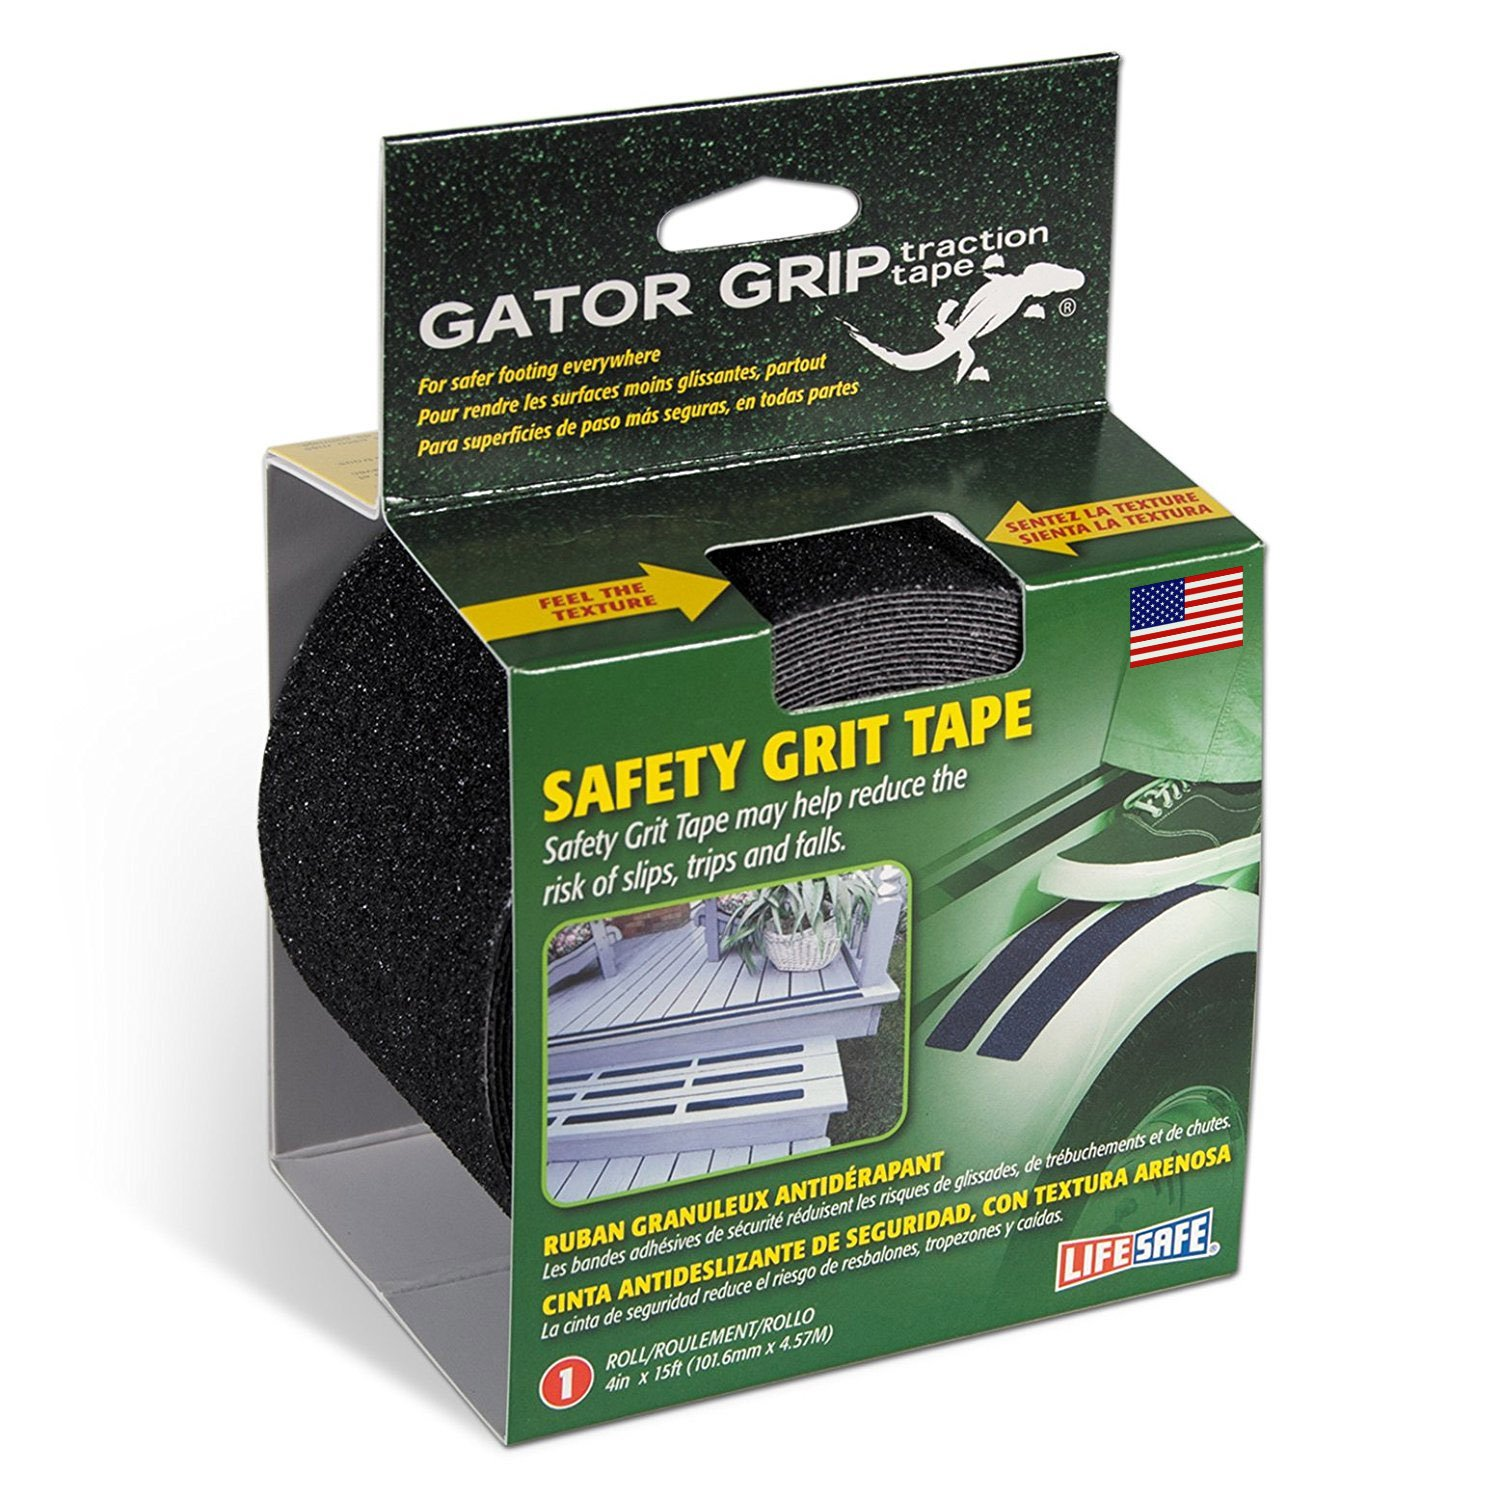 Gator Grip: RE3952 Premium Grade Anti-Slip Traction Tape, 4 Inch x 15 Foot, Black by Gator Grip